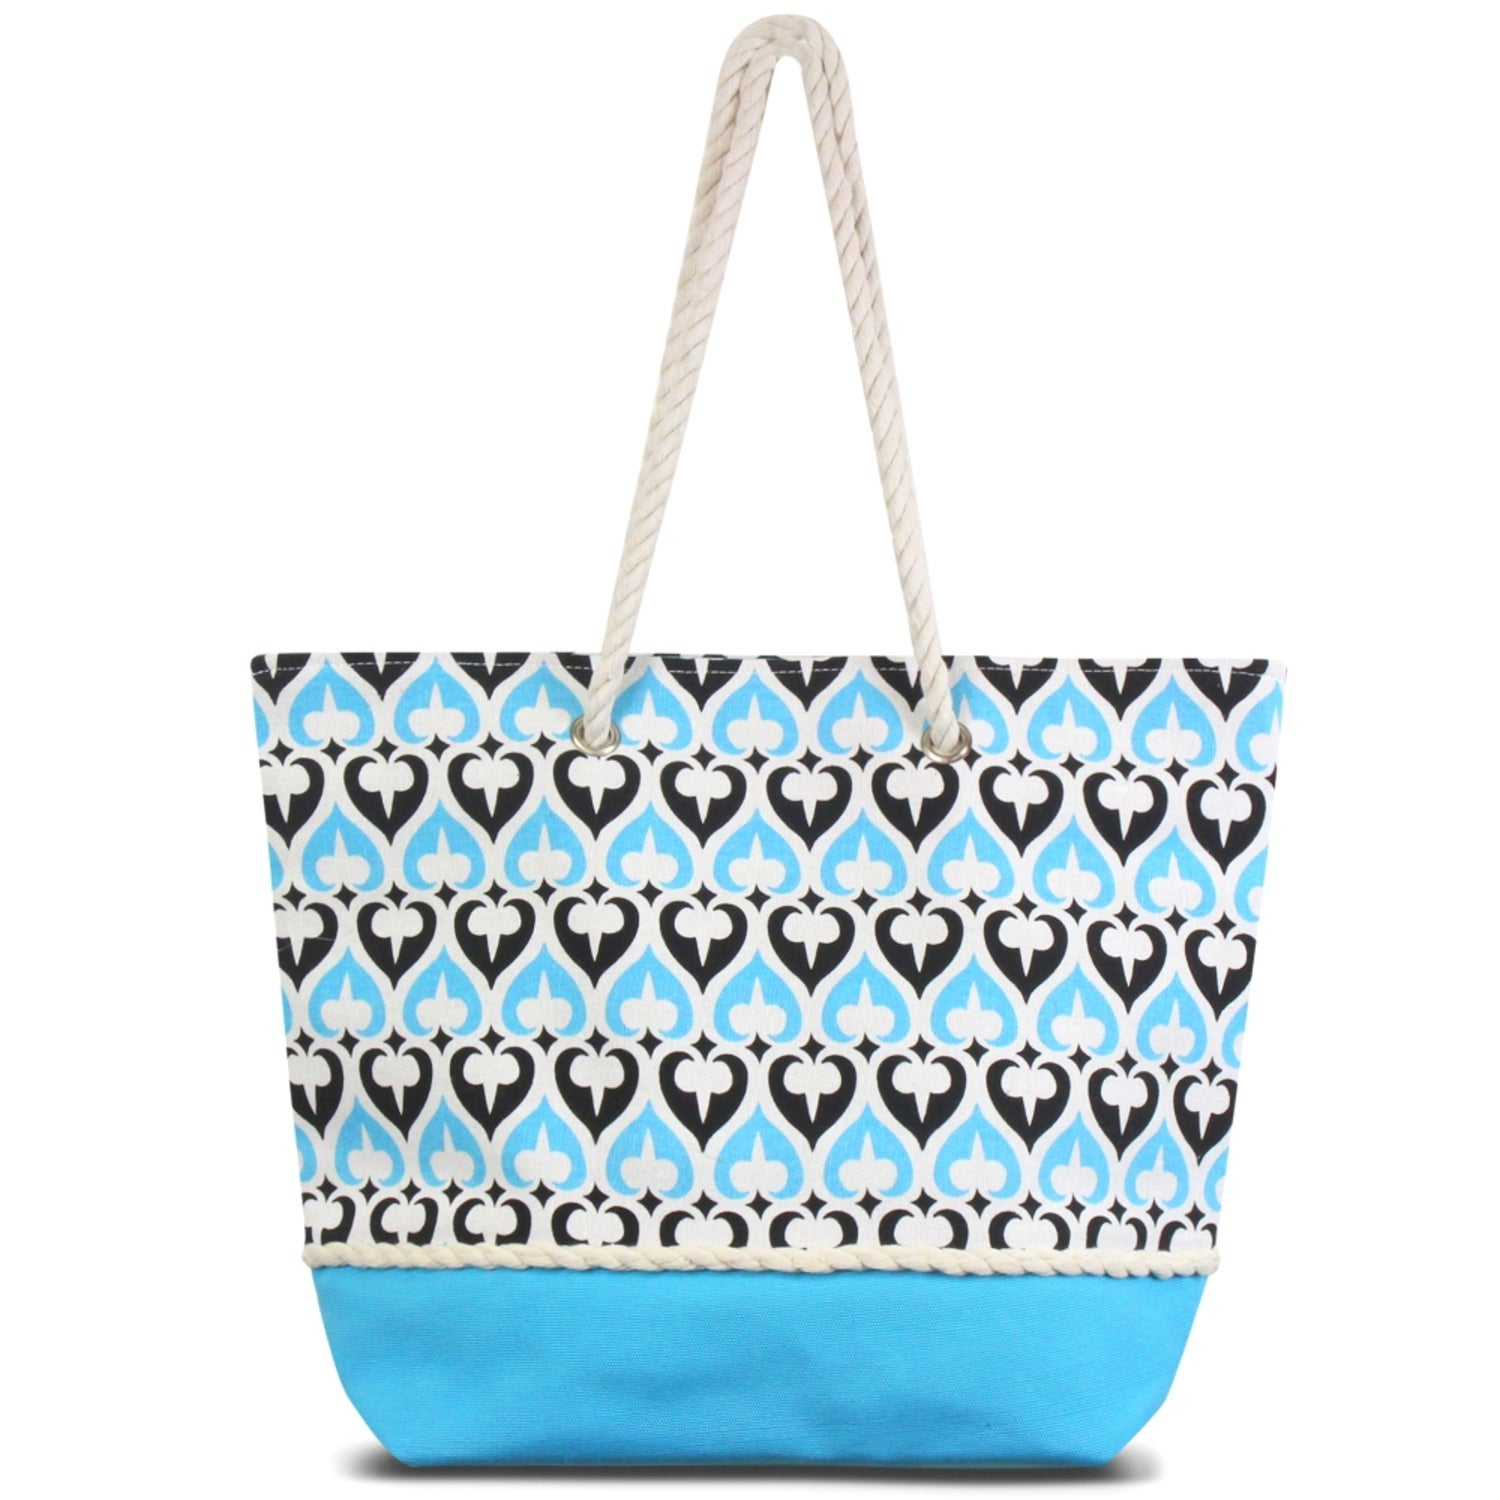 763a099f32d5 Shop Zodaca Blue Spade Women Handbag Ladies Large Shoulder Tote Purse  Messenger Bag - Free Shipping On Orders Over  45 - Overstock.com - 16697599